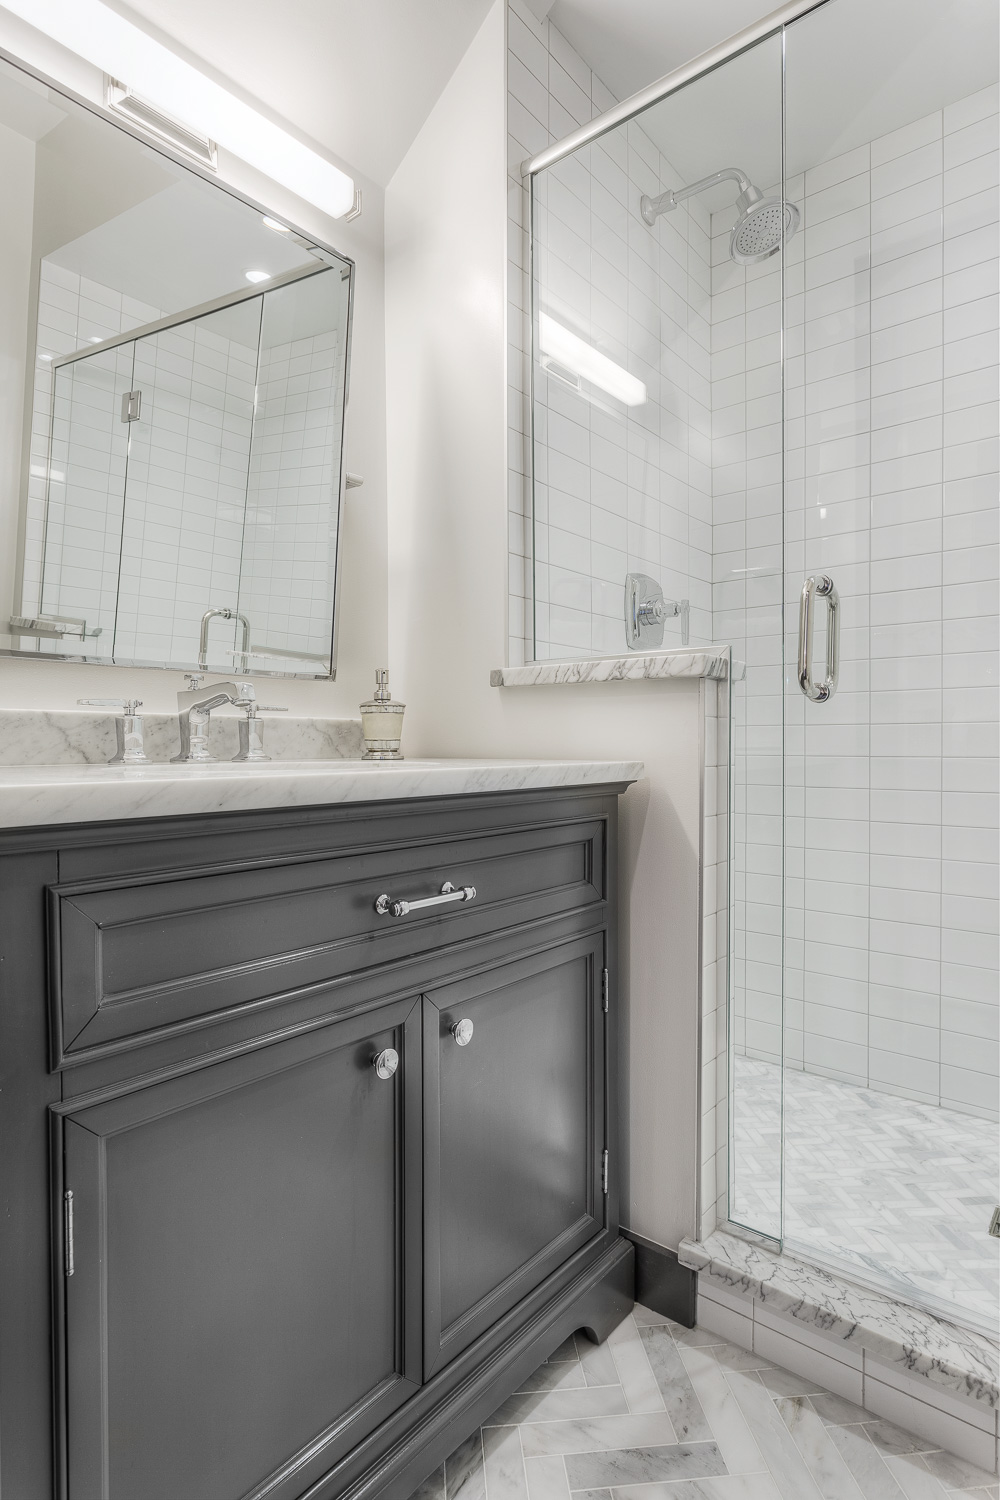 GrayBathroom-GrayscaleDesign.jpg